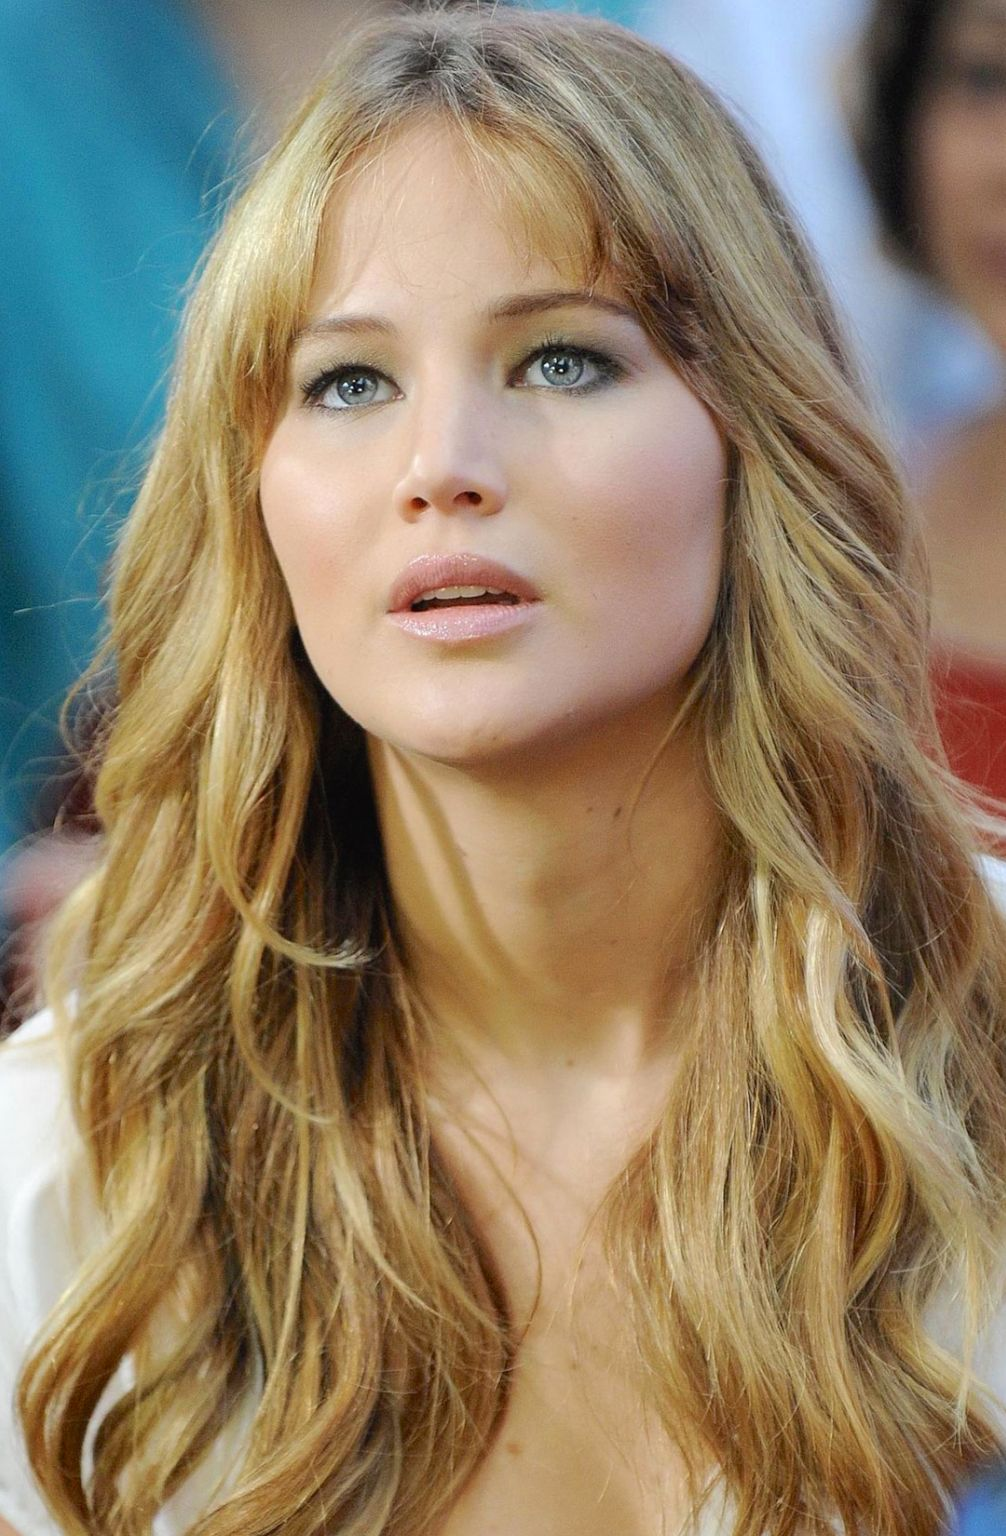 Even with a chubby face stripped of her mascara, Jennifer could still prove how amazing she is with this photo.